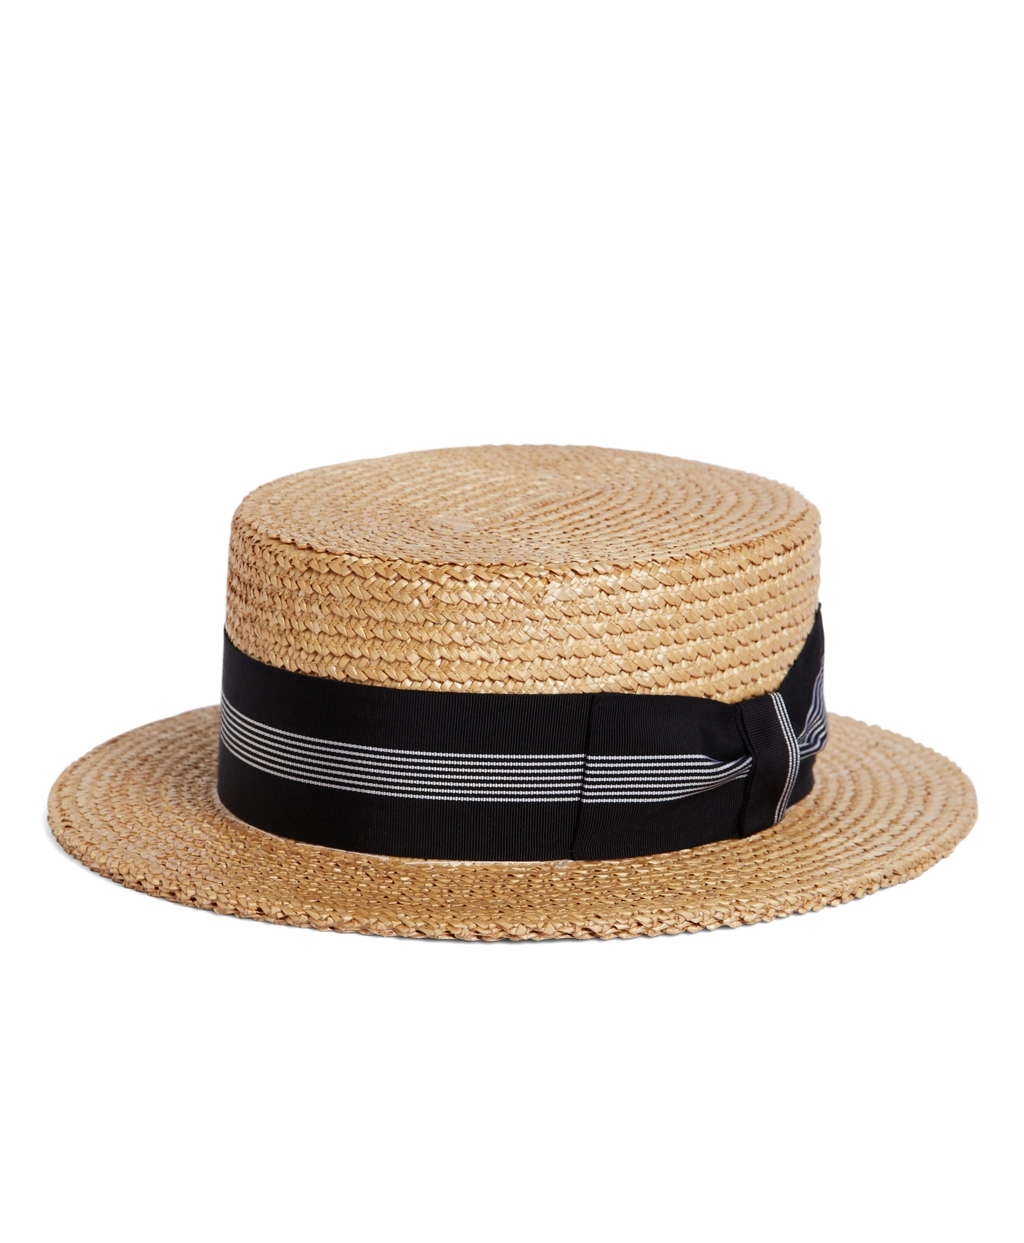 New Edwardian Style Men's Hats 1900-1920 Brooks Brothers Mens The Great Gatsby Collection Straw Boater Hat With Navy And White Striped Ribbon $198.00 AT vintagedancer.com